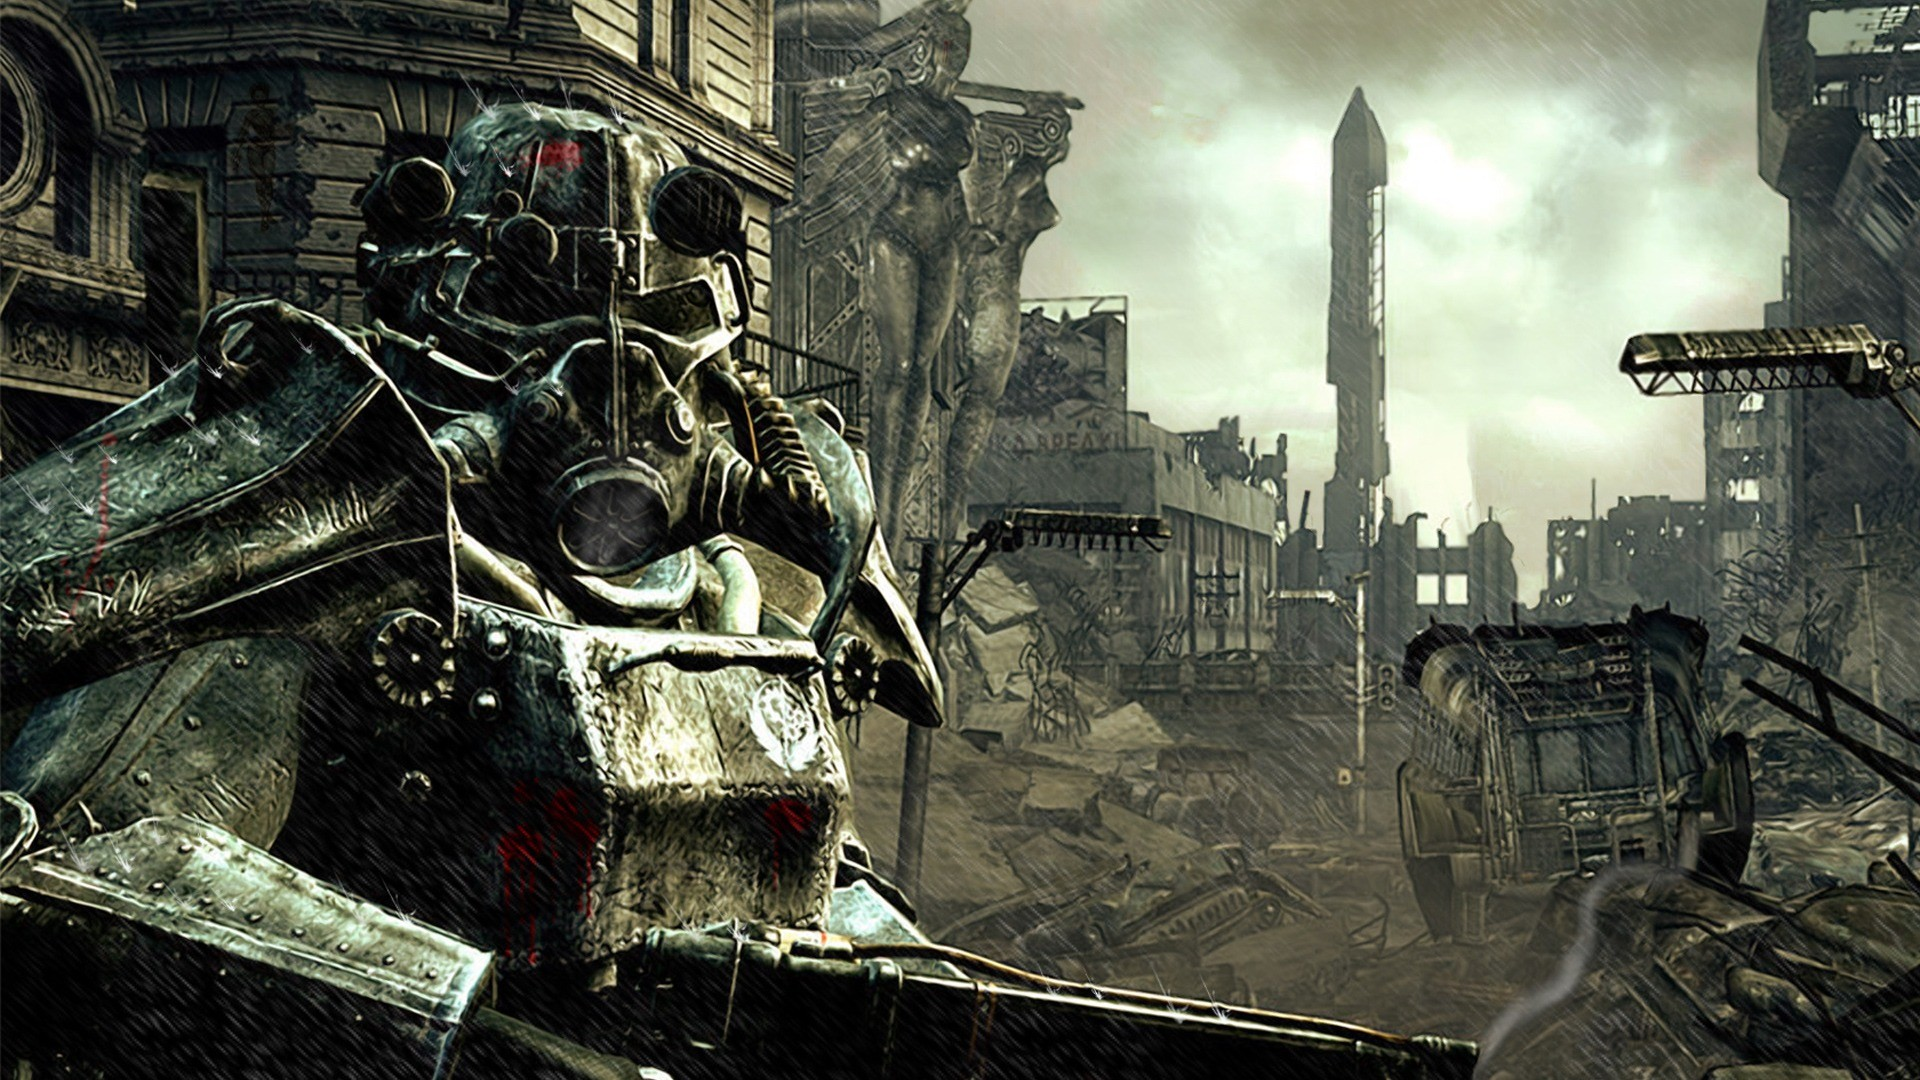 1920x1080 Fallout Game. Download Fallout 1 wallpaper